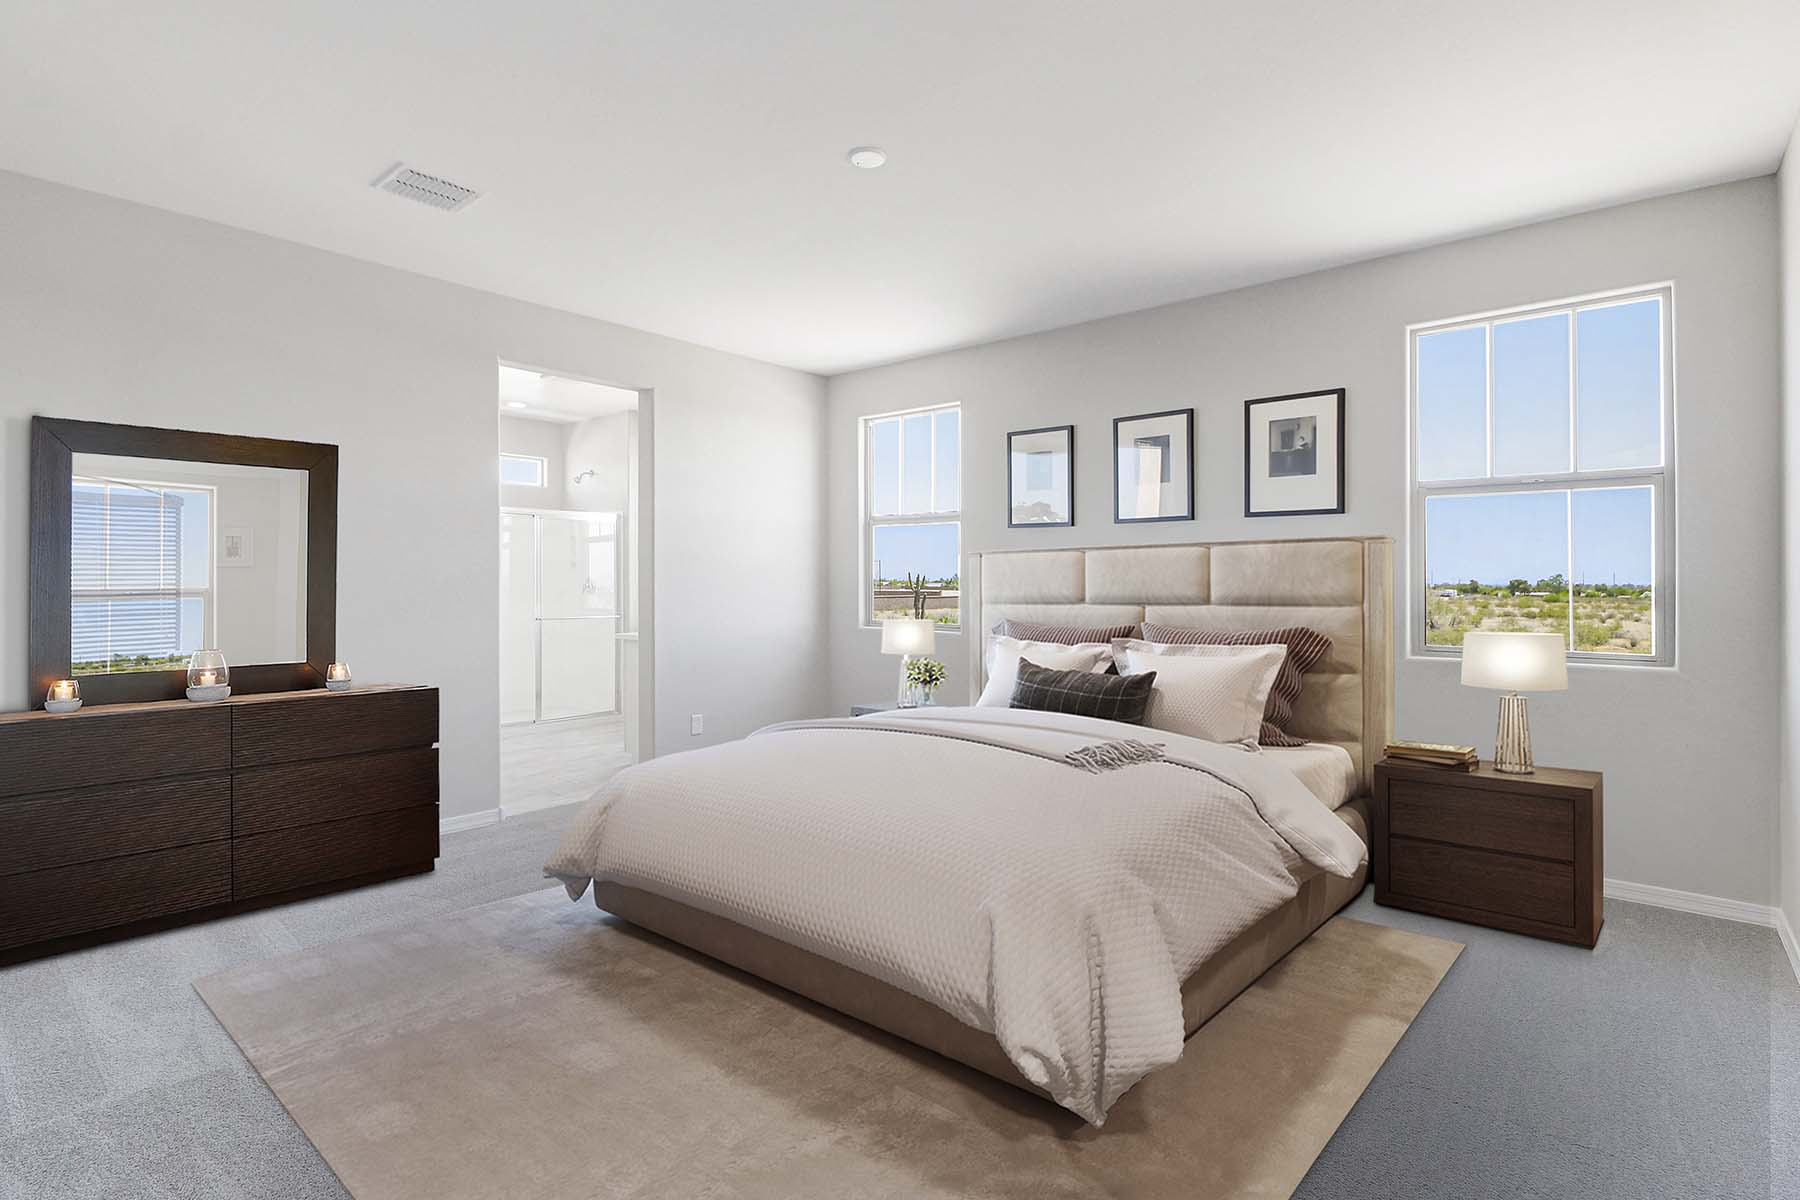 Brookside at Arroyo Seco Bedroom in Buckeye Arizona by Mattamy Homes